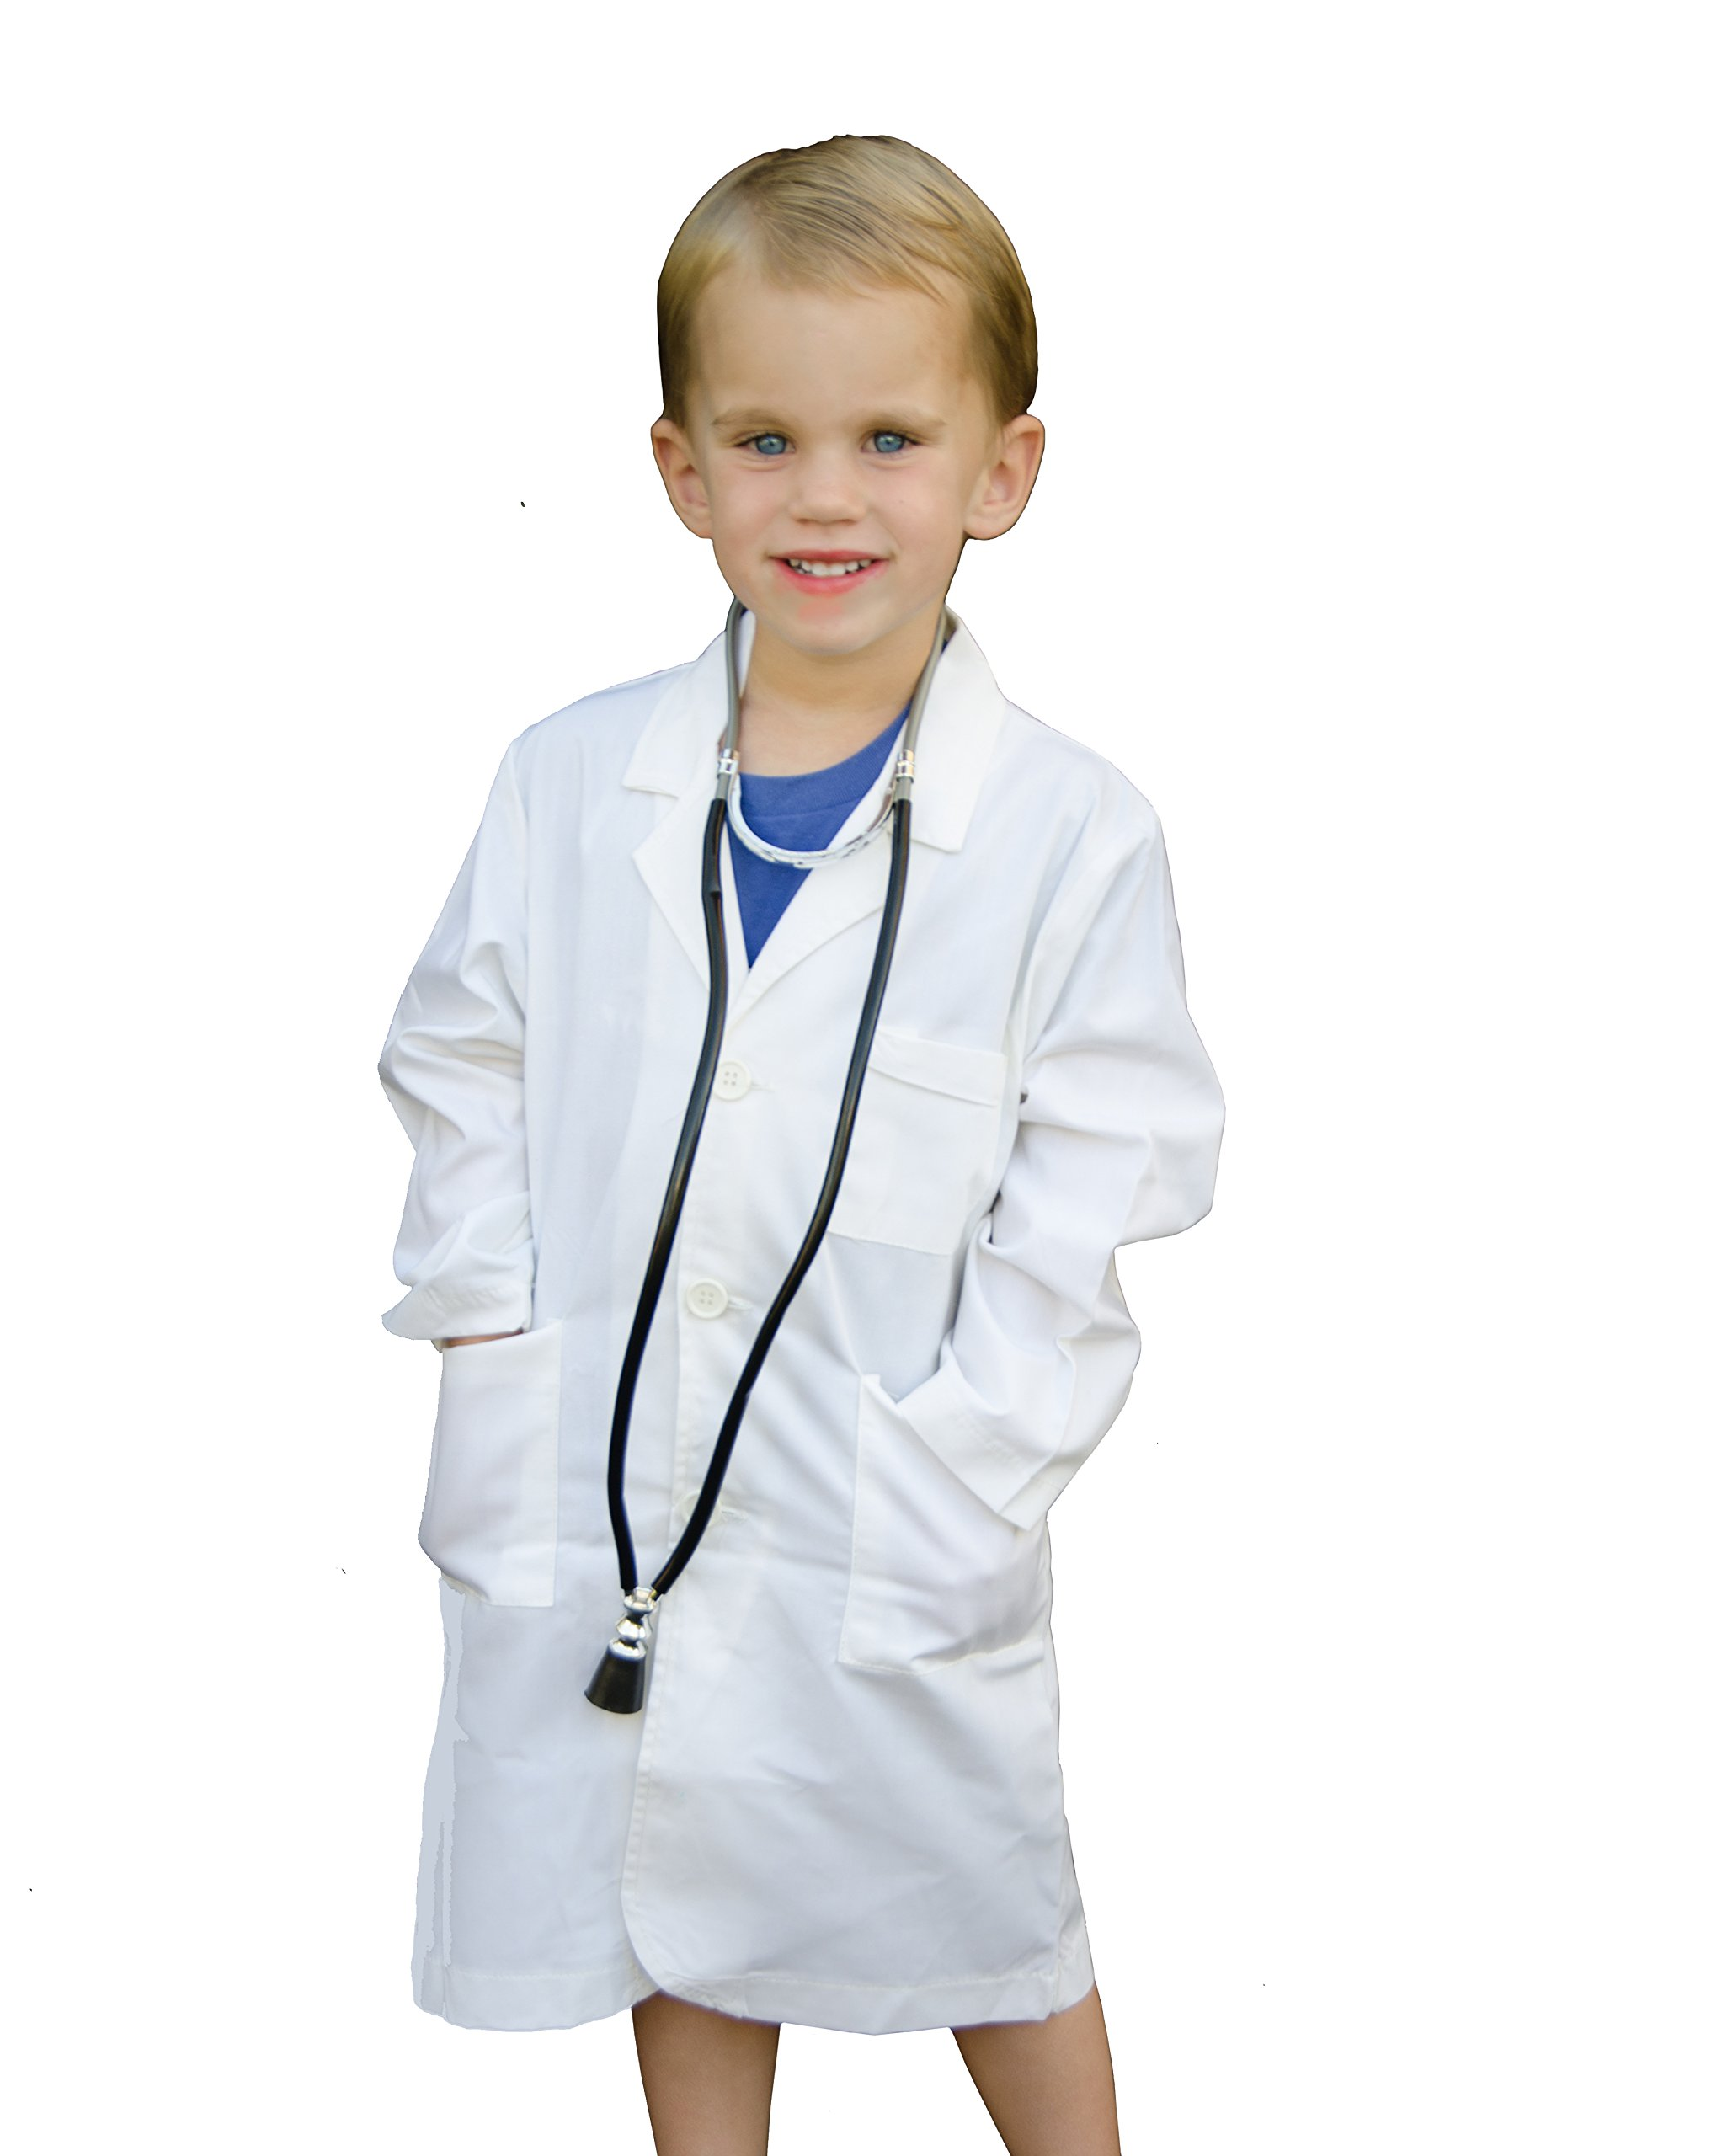 Doctor's Jr. Kids Lab Coat - with Toy Stethoscope (4/6)